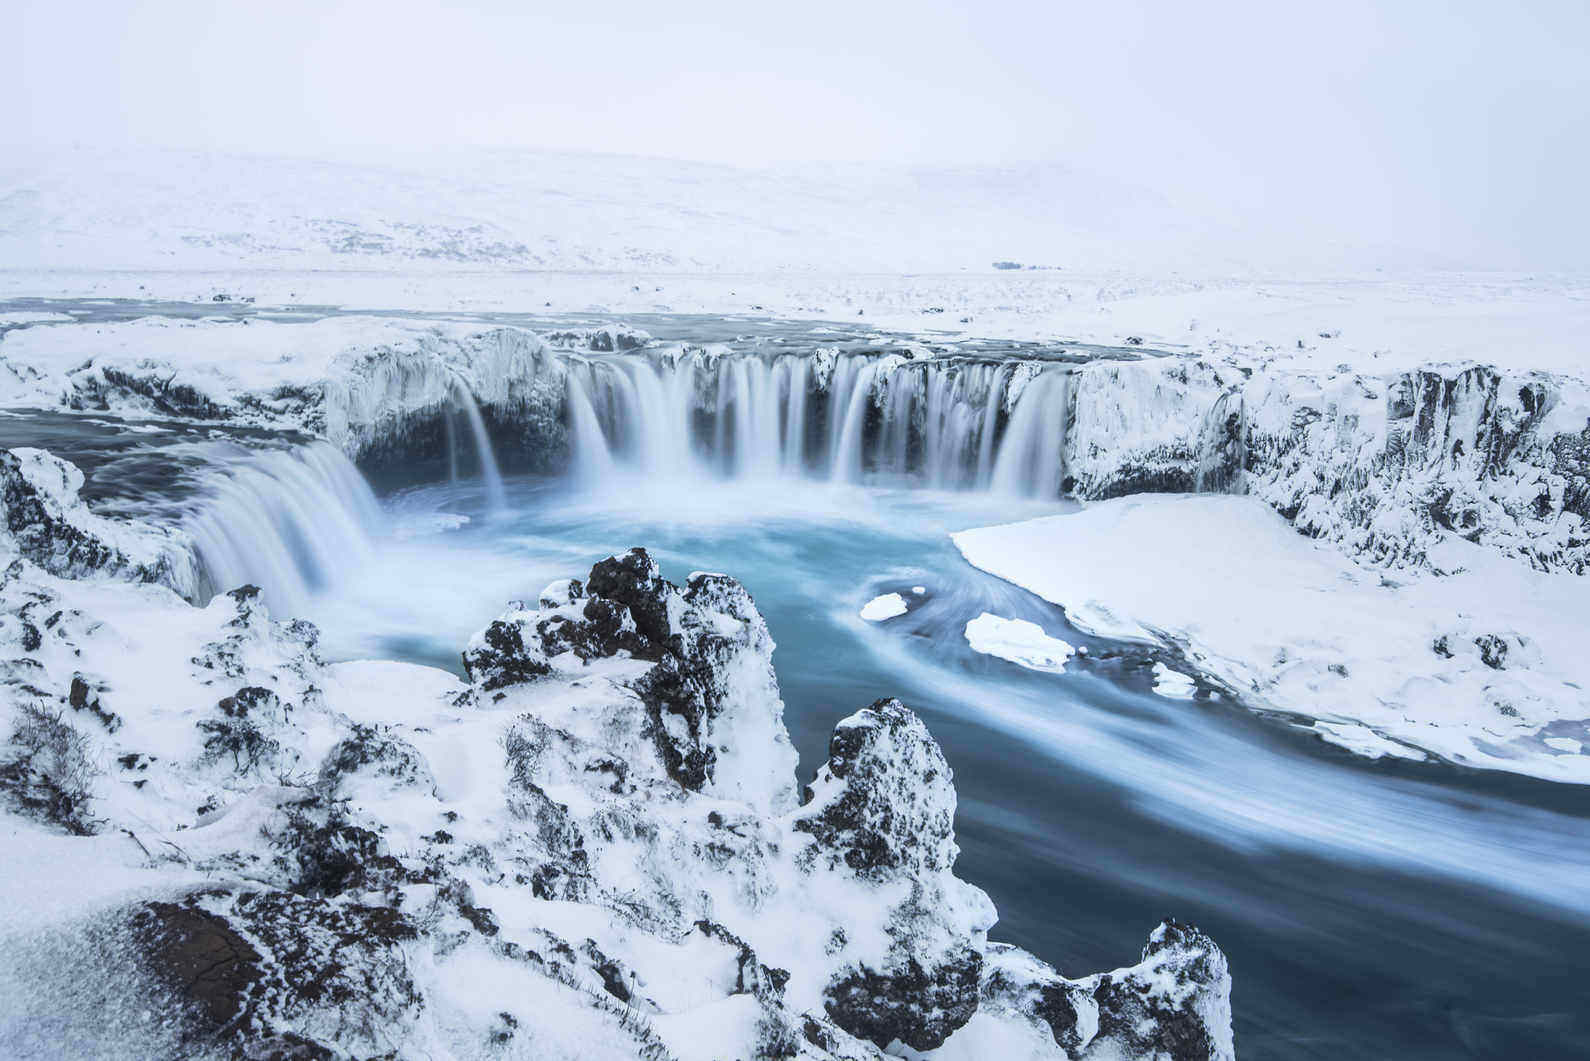 Godafoss waterfall in Iceland covered in snow, with a white landscape